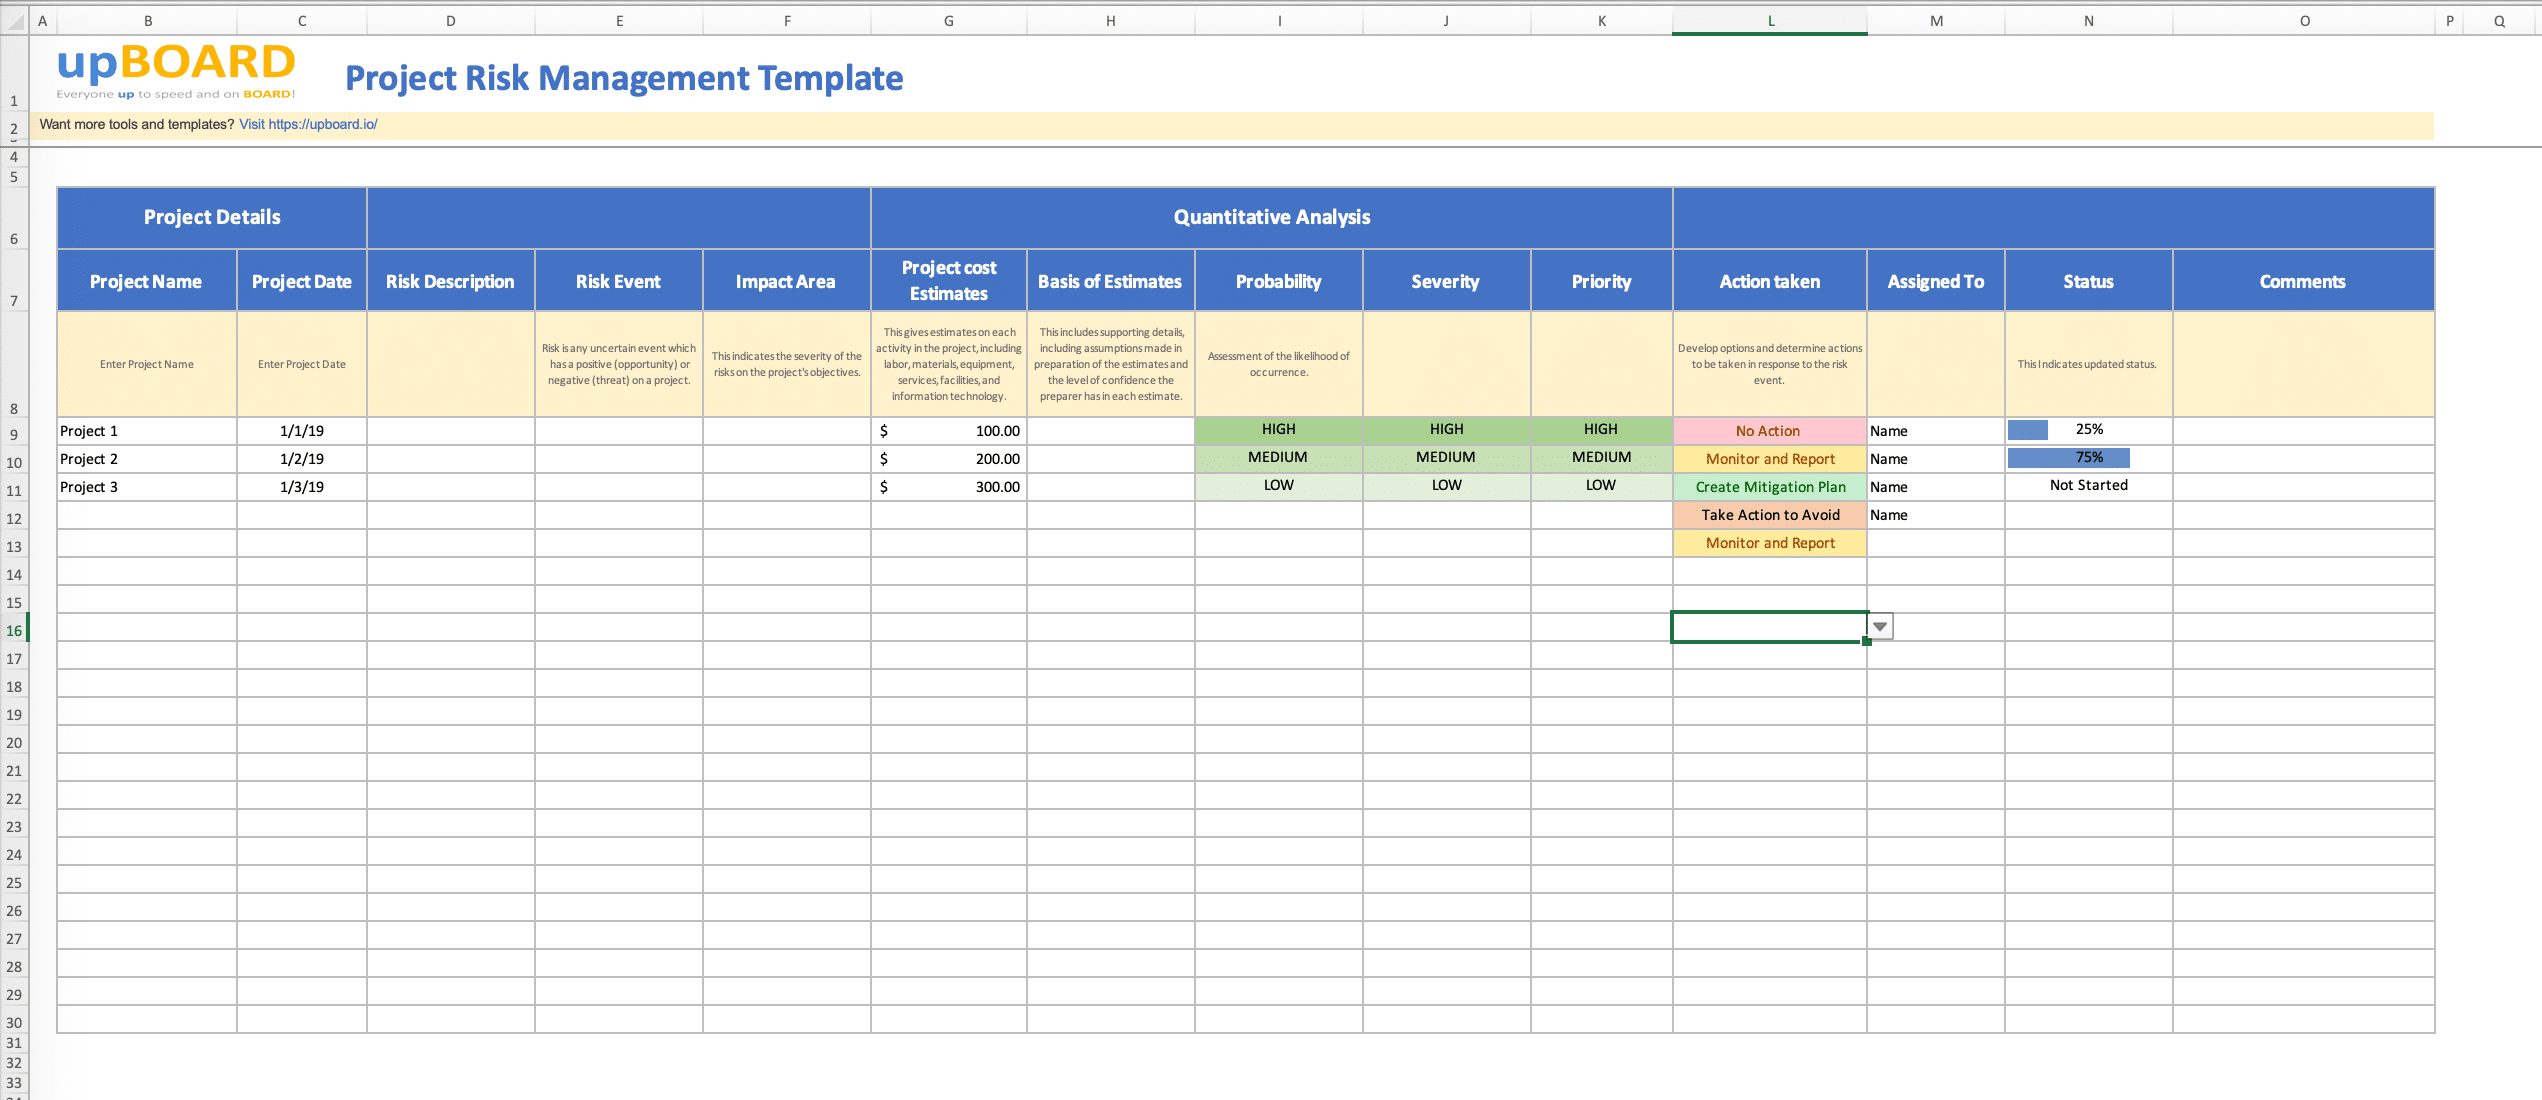 Project Risk Management Template - Free Excel Tool